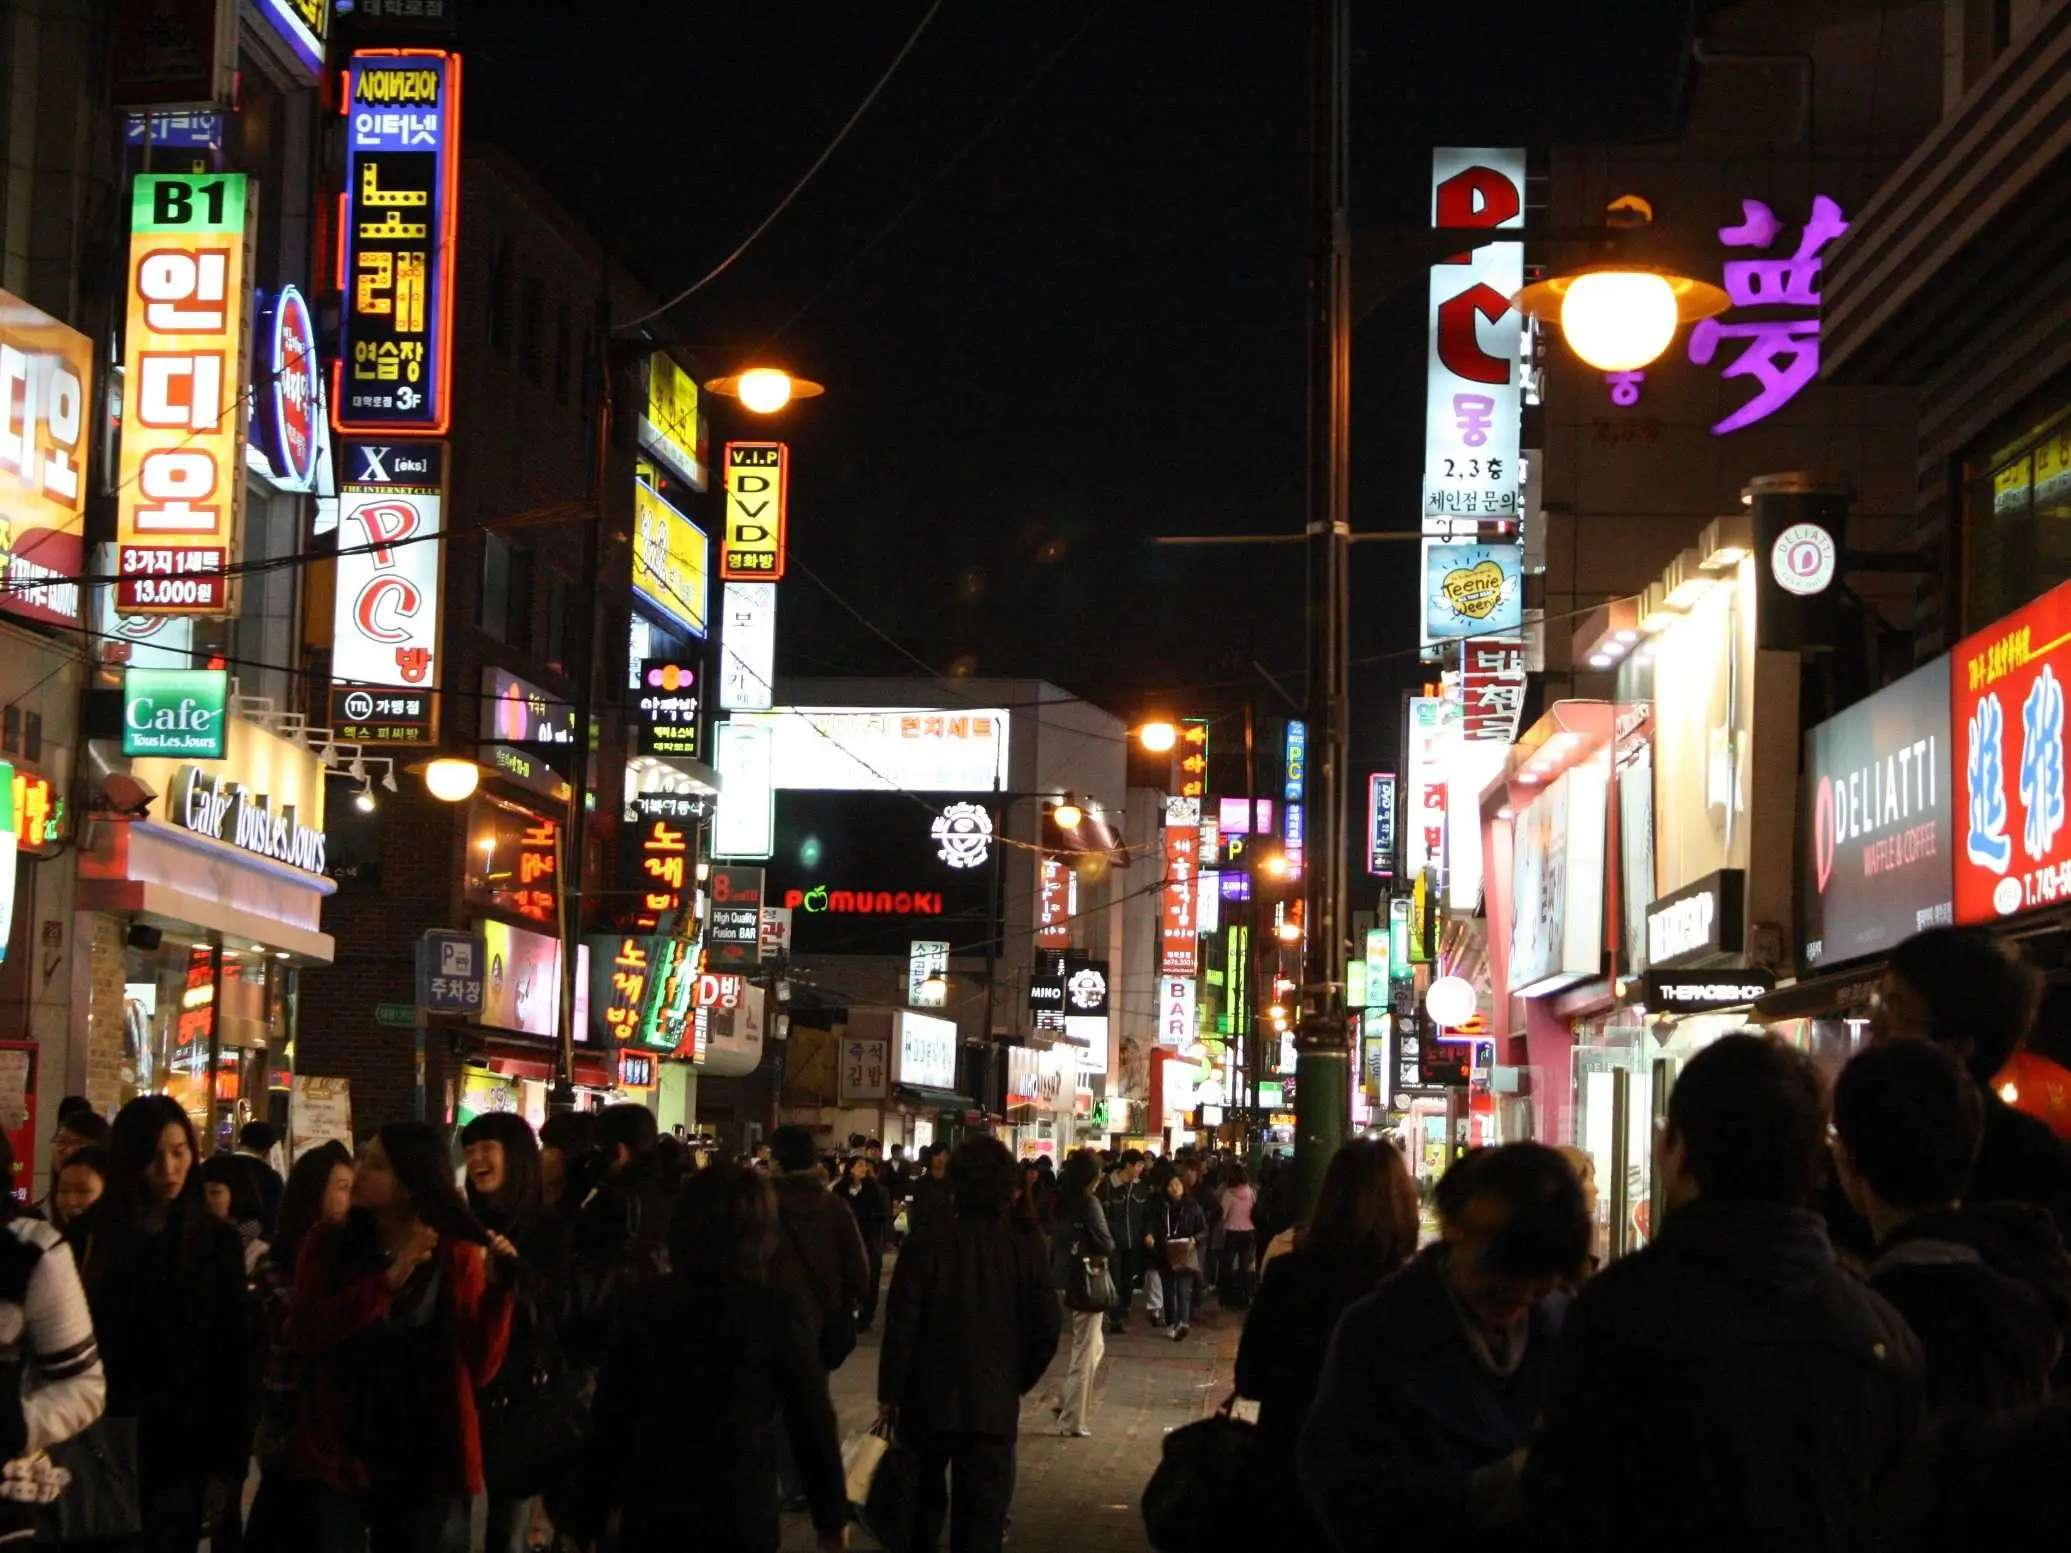 Seoul, South Korea, has made inroads in becoming one of the world's top